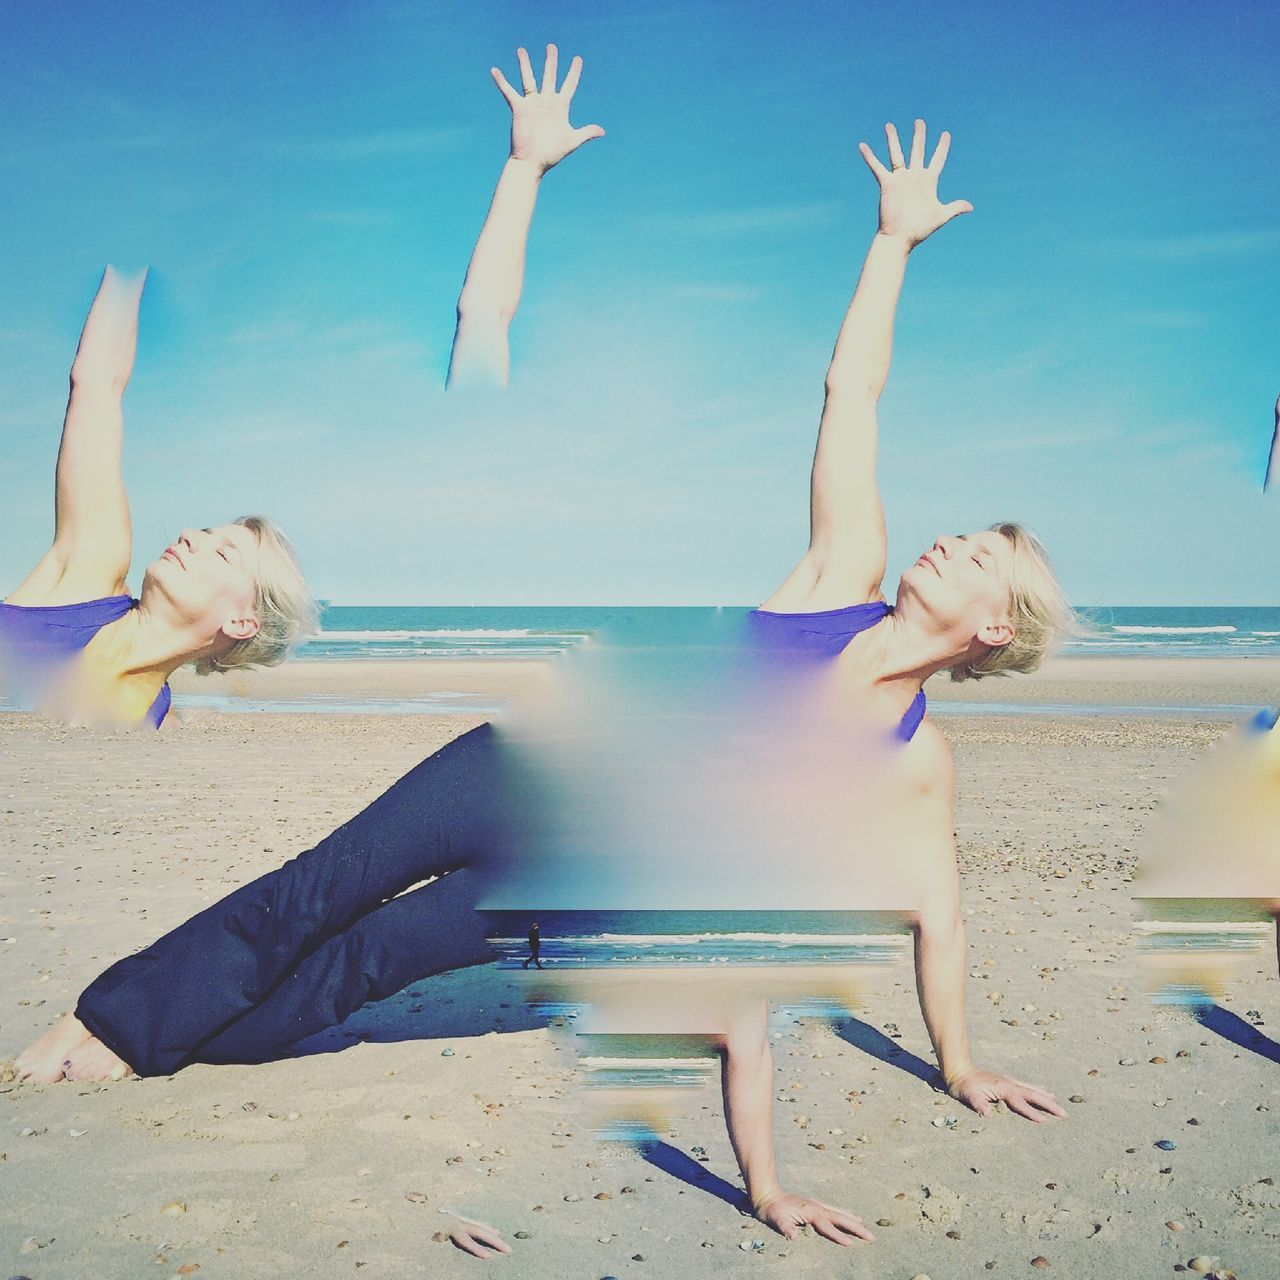 Yoga Freaks Me Out Outofmycomfortzone What I Value IPhoneArtism Getting Creative